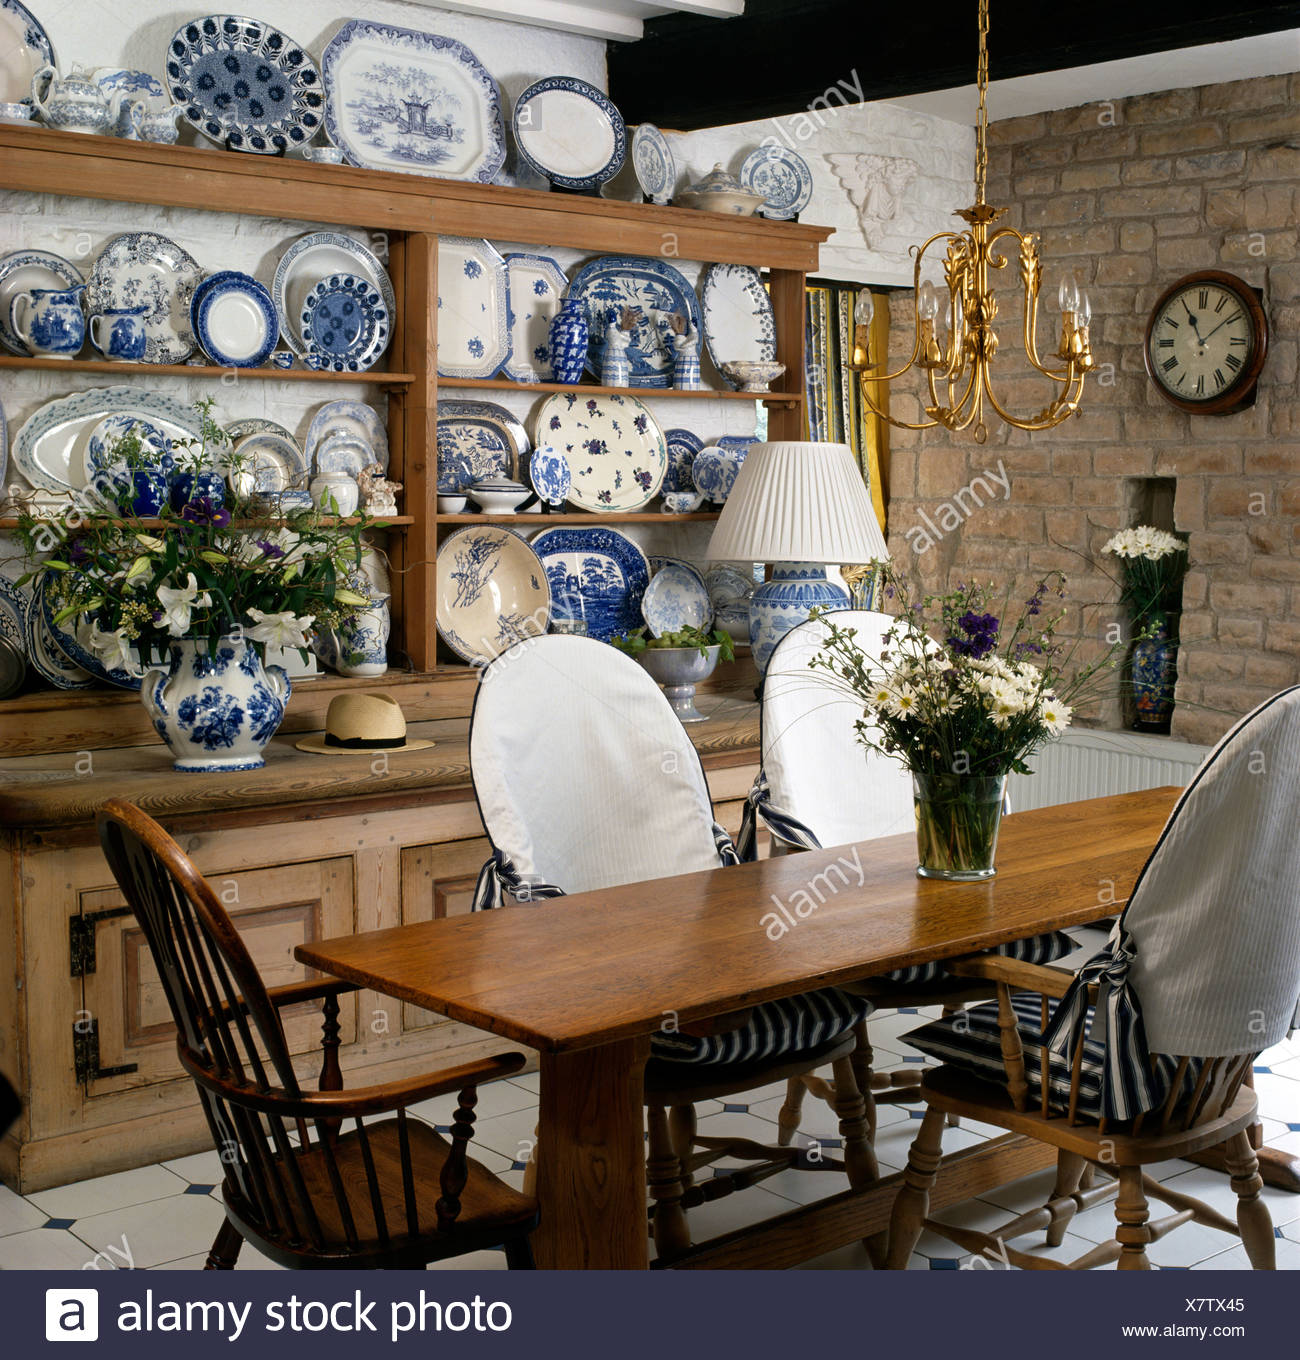 Simple Wood Table And Chairs With White Slip Covers In Cottage Dining Room  With Collection Of Blue+white China On Old Dresser